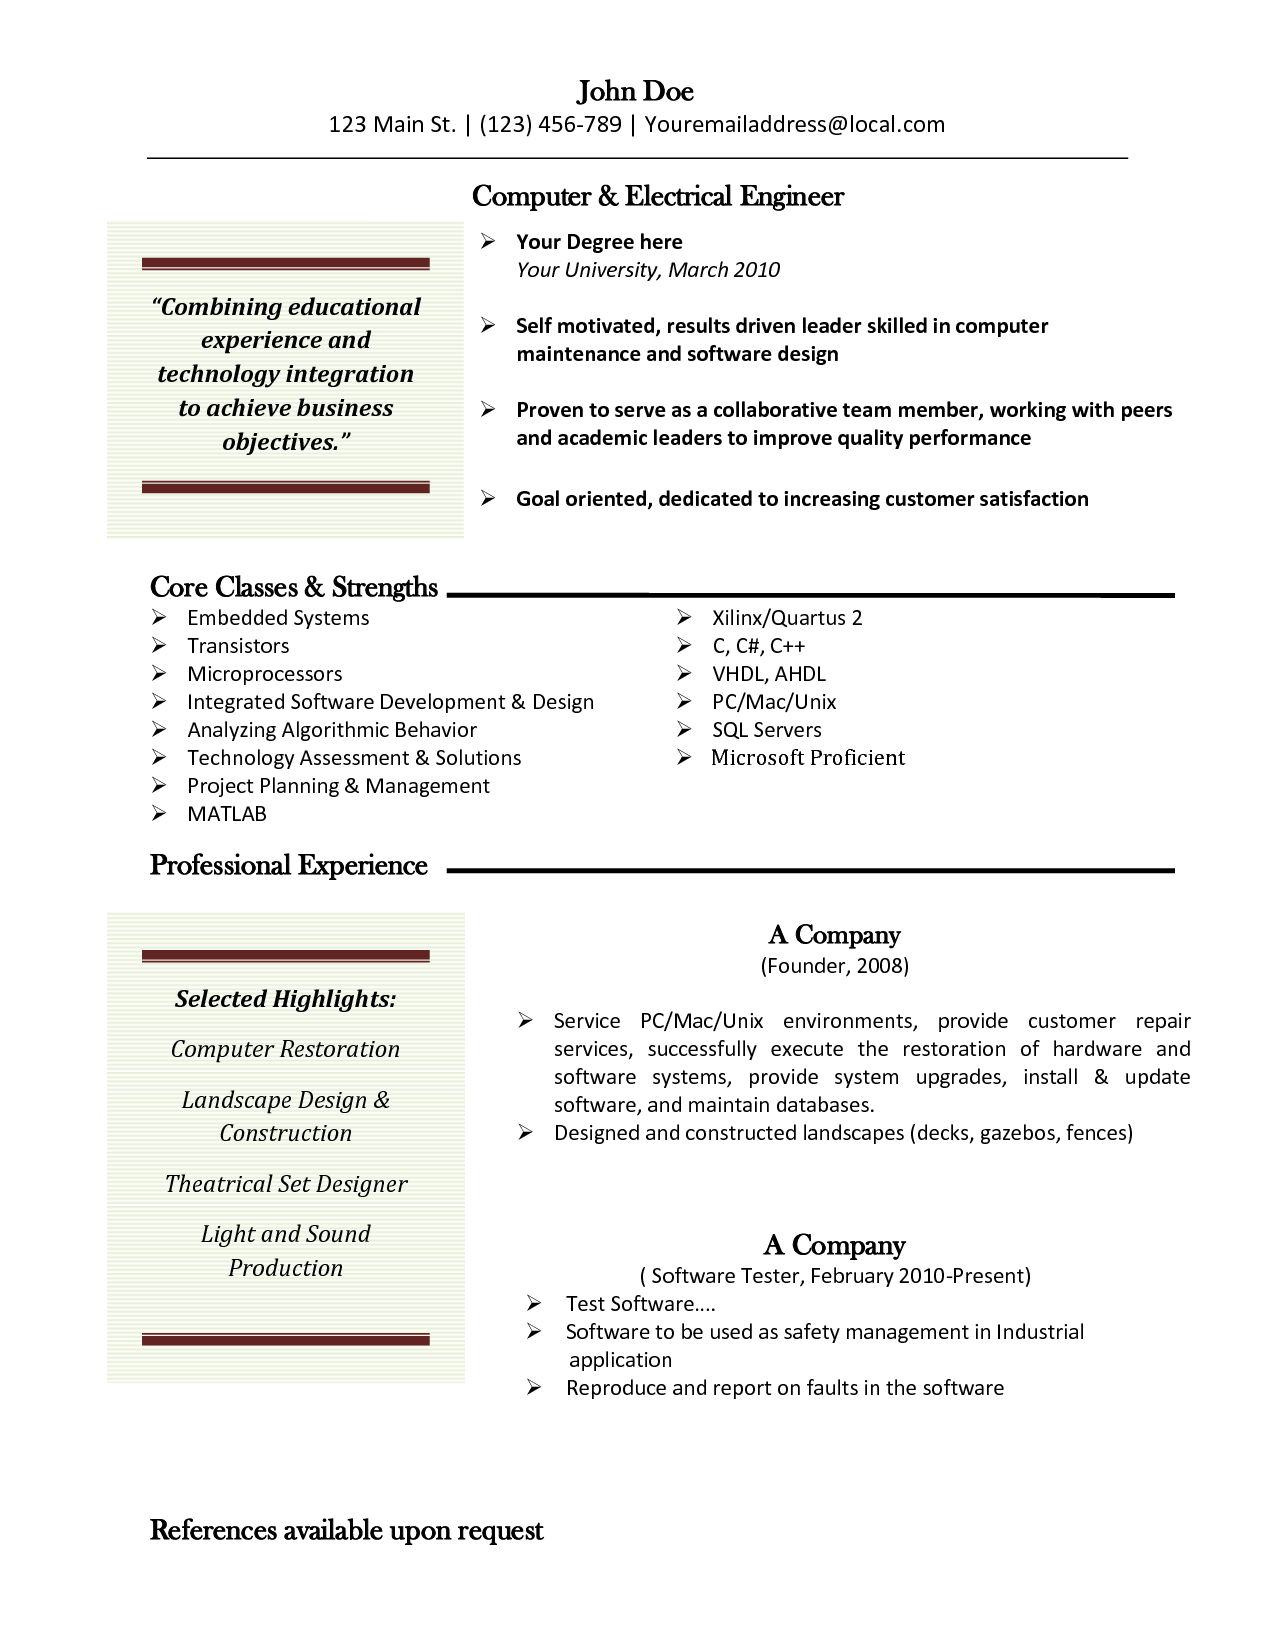 Resume Template Download Resume Templates For Mac  Httpwwwjobresumewebsiteresume